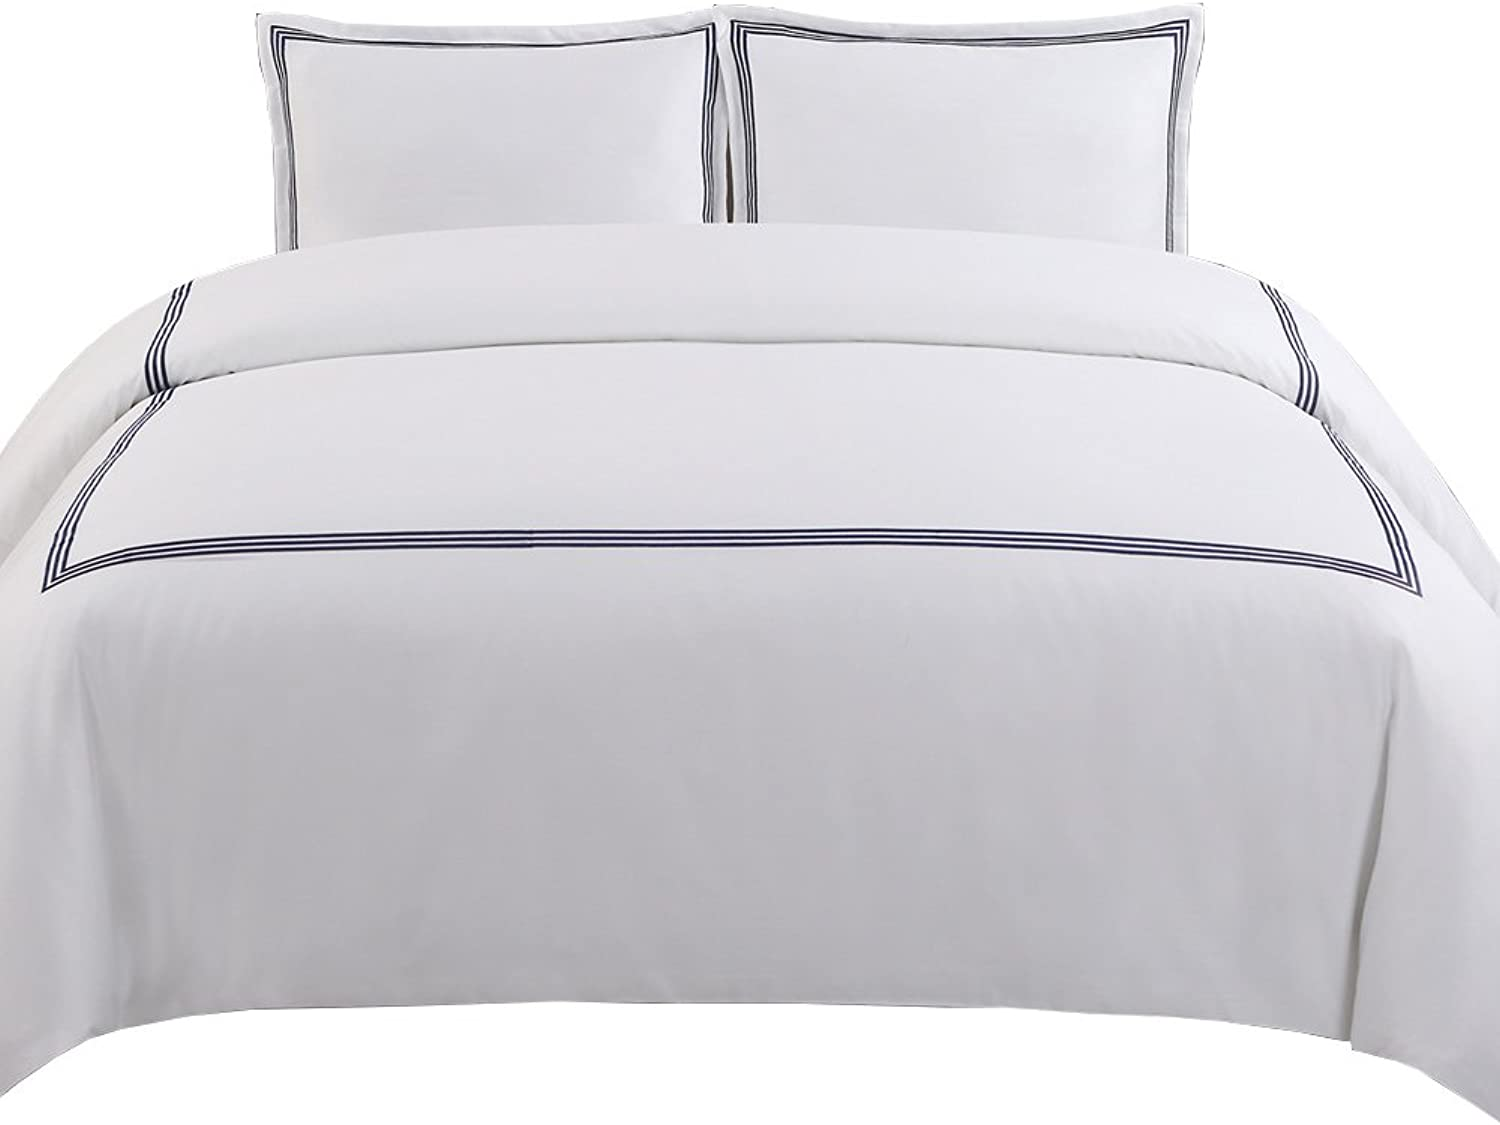 Echelon Home Three Line Hotel Collection Duvet Cover Set, Full Queen, Navy